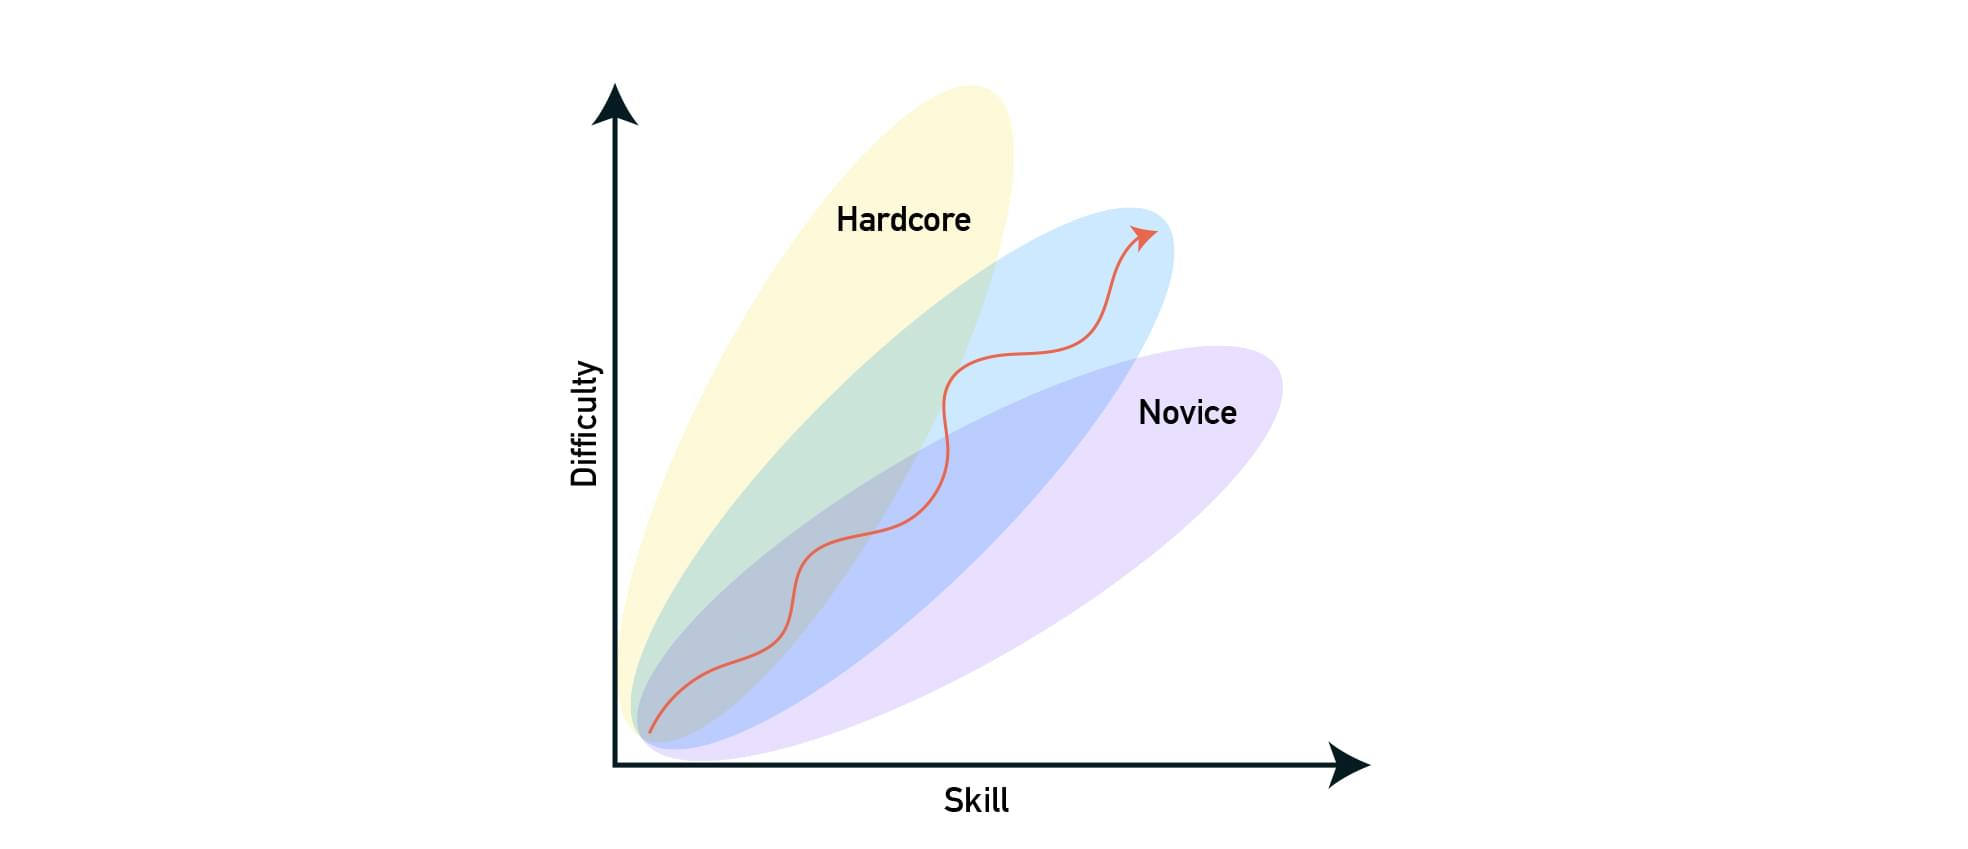 The flow zone is different depending on the skill level of the player